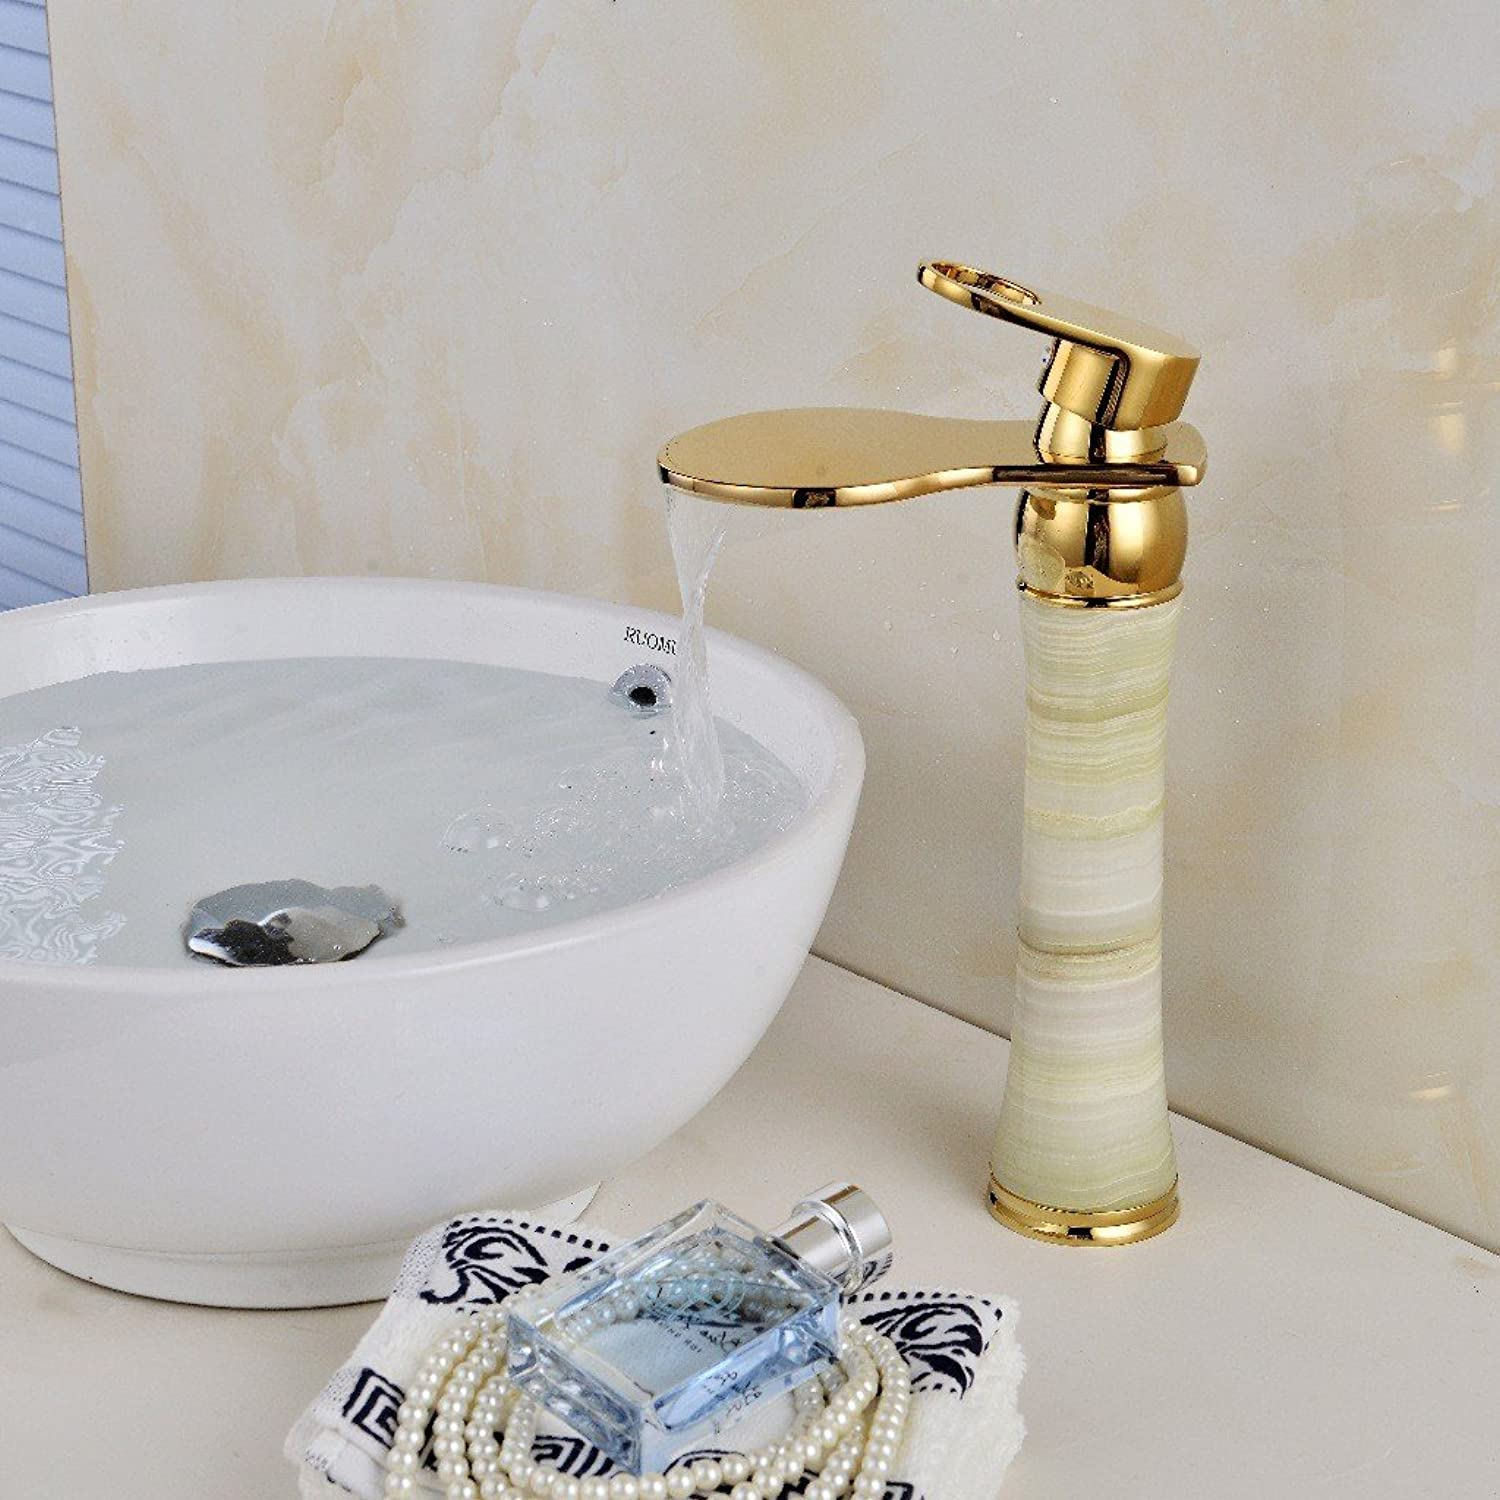 MIAORUI gold ORB all copper natural jade faucet waterfall basin hot and cold high water faucet